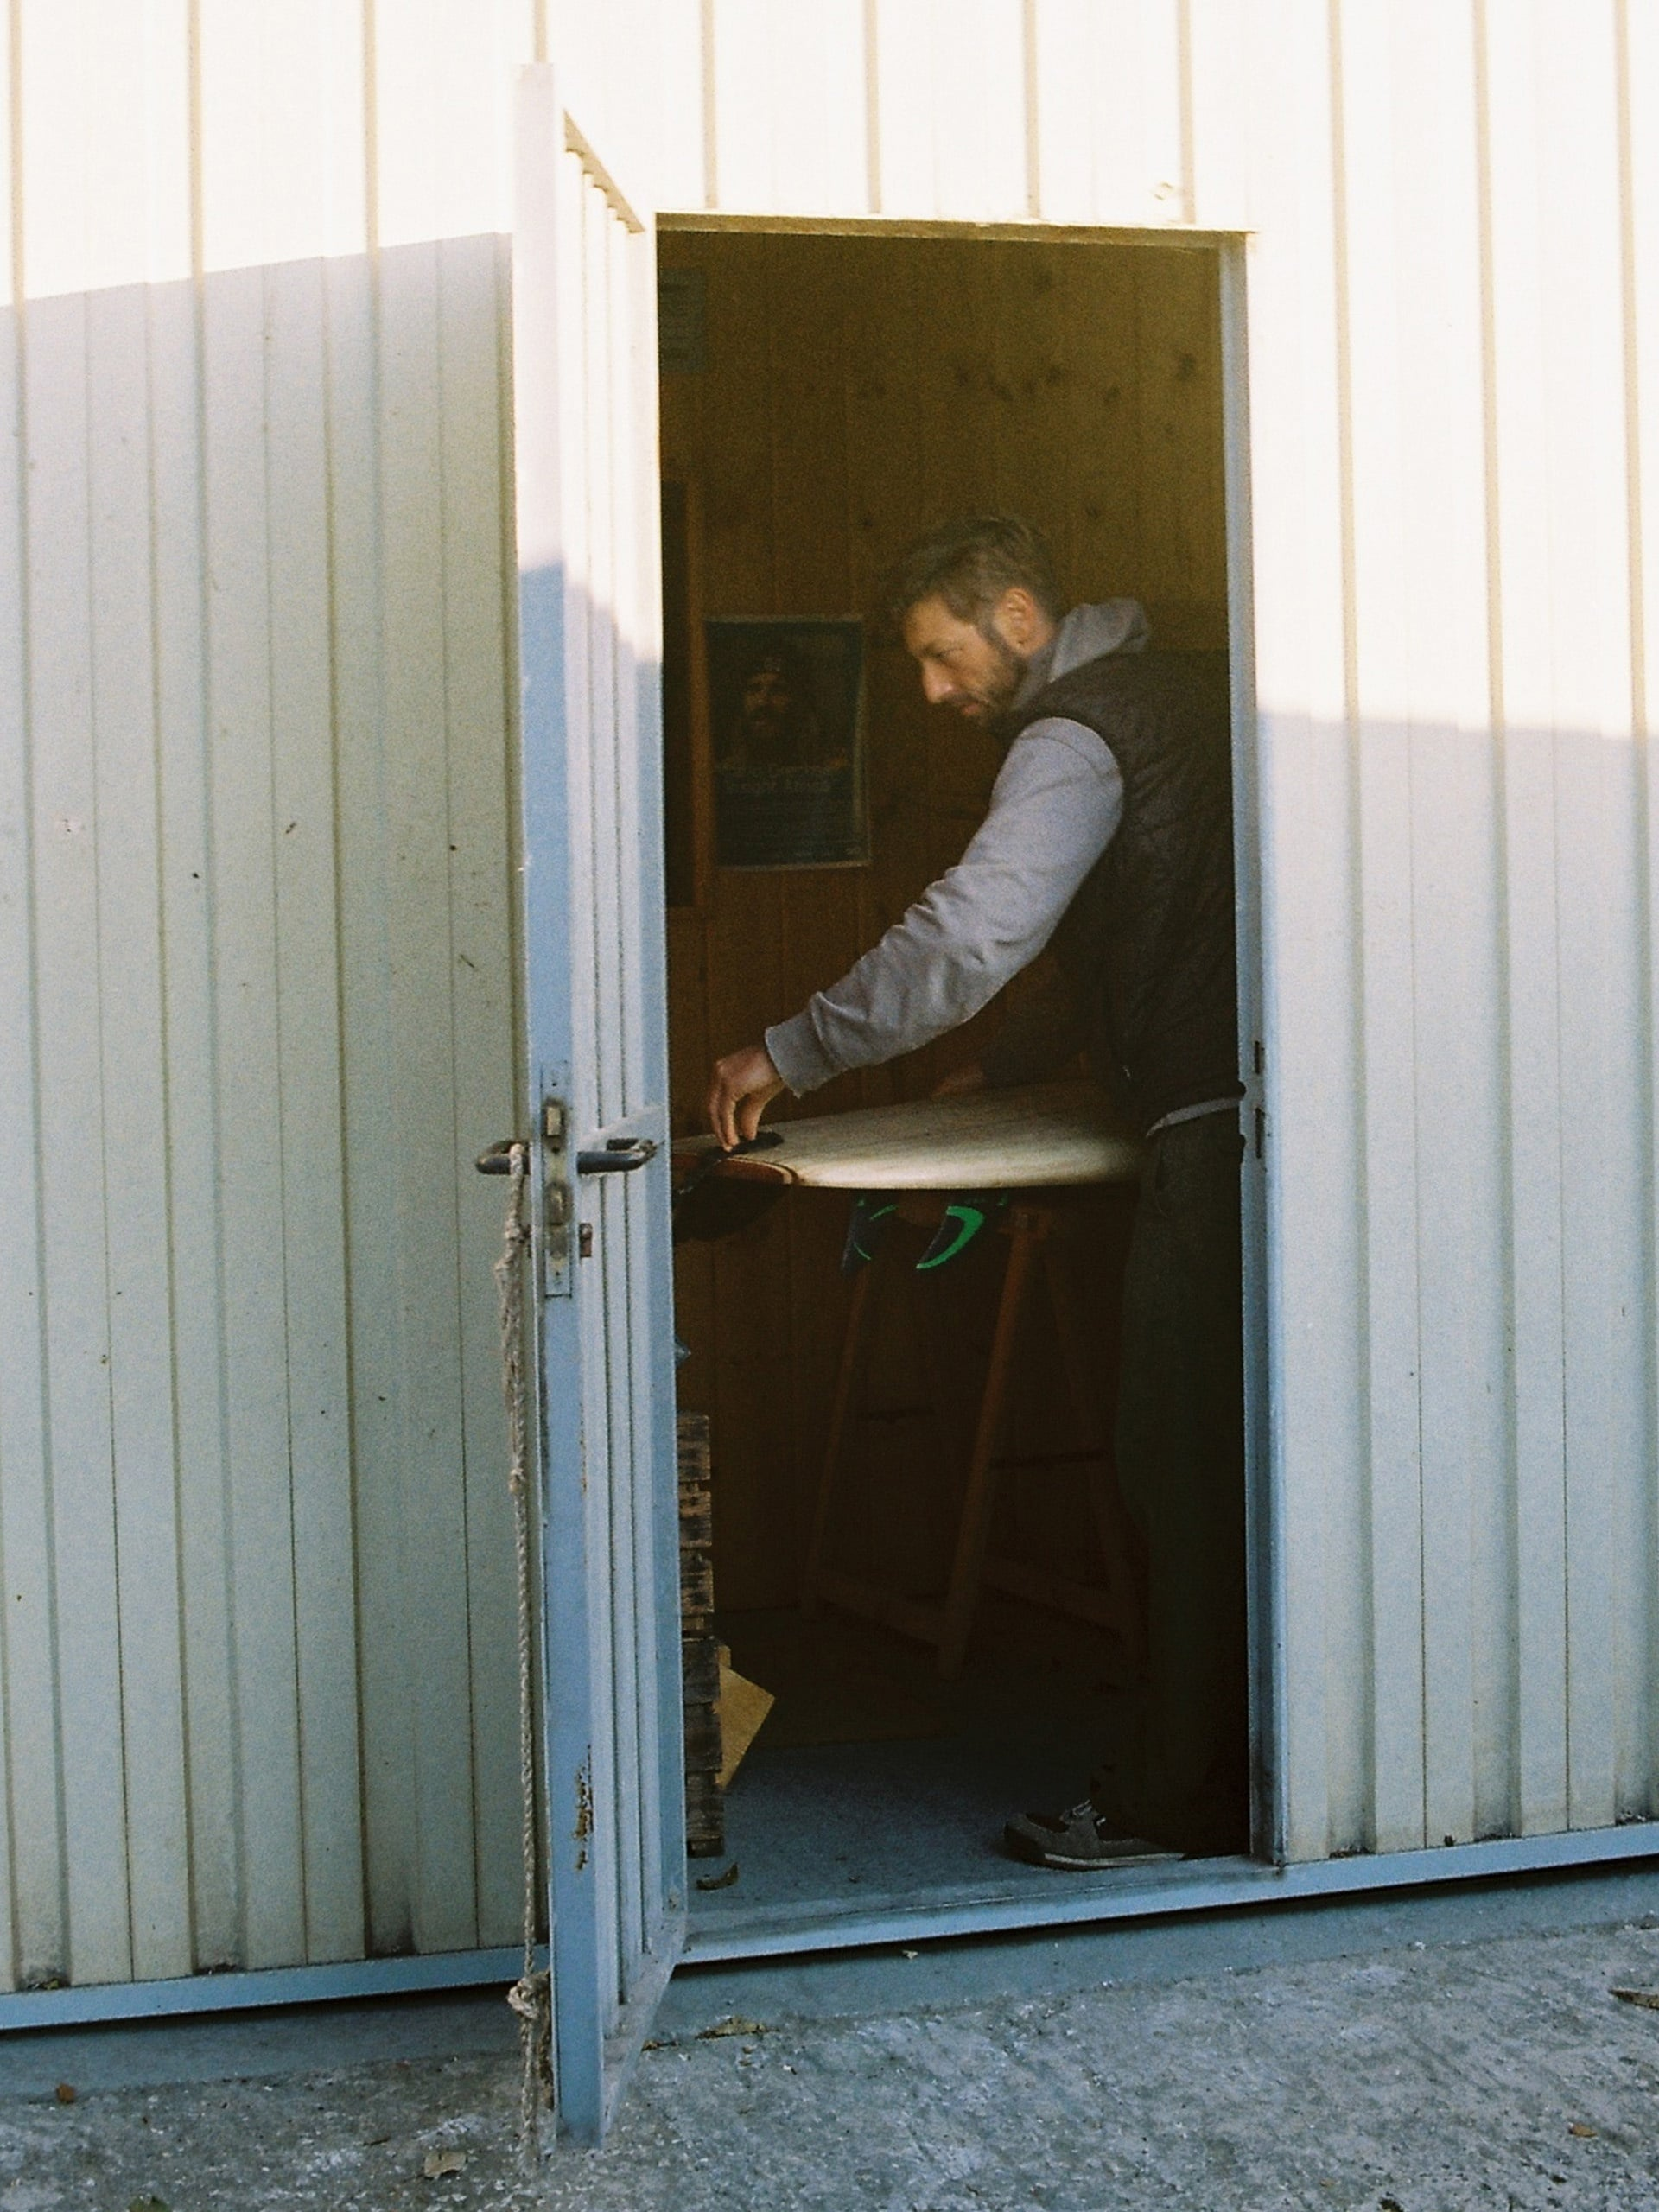 Stefan working on a surfboard, viewed through the open door of his workshop